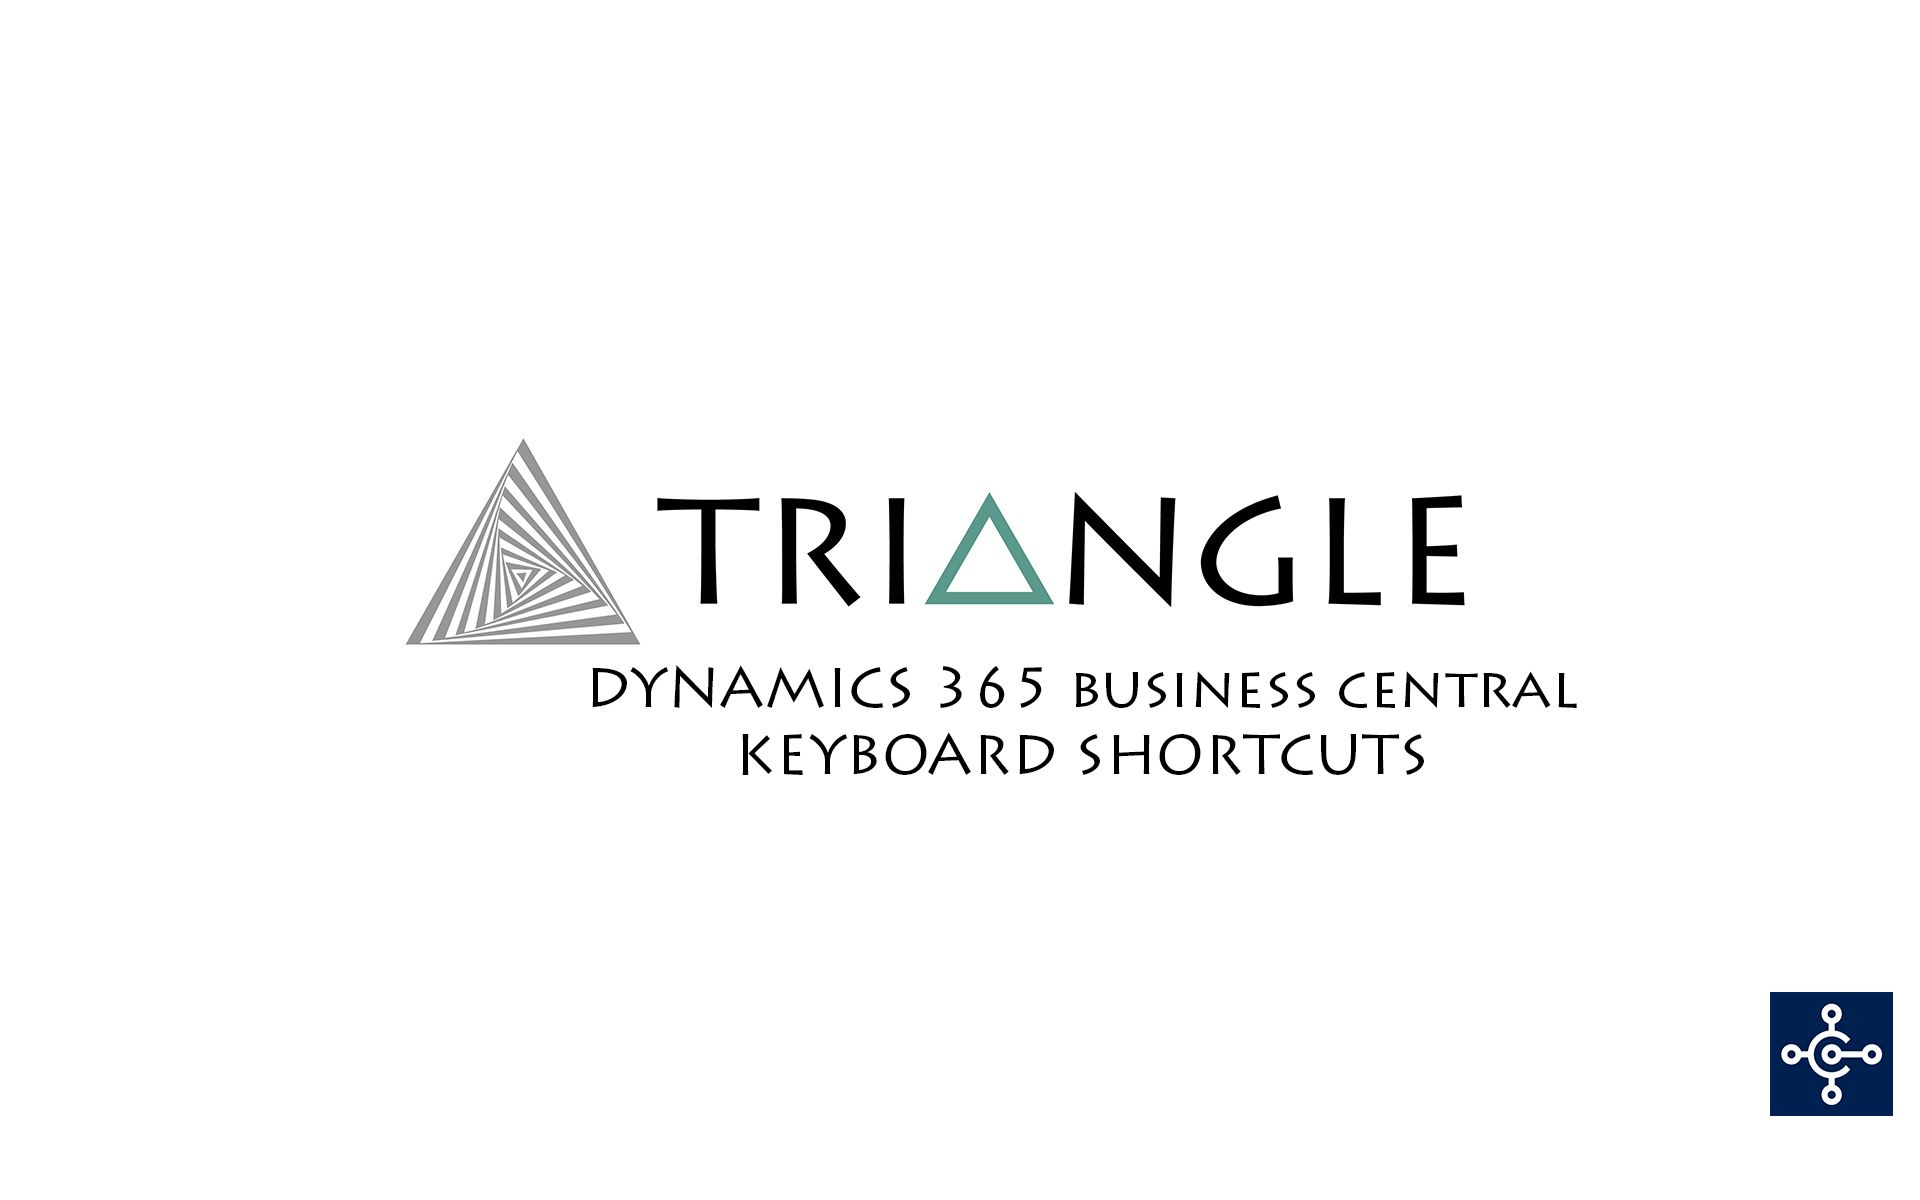 Dynamics 365 Business Central Keyboard Shortcuts